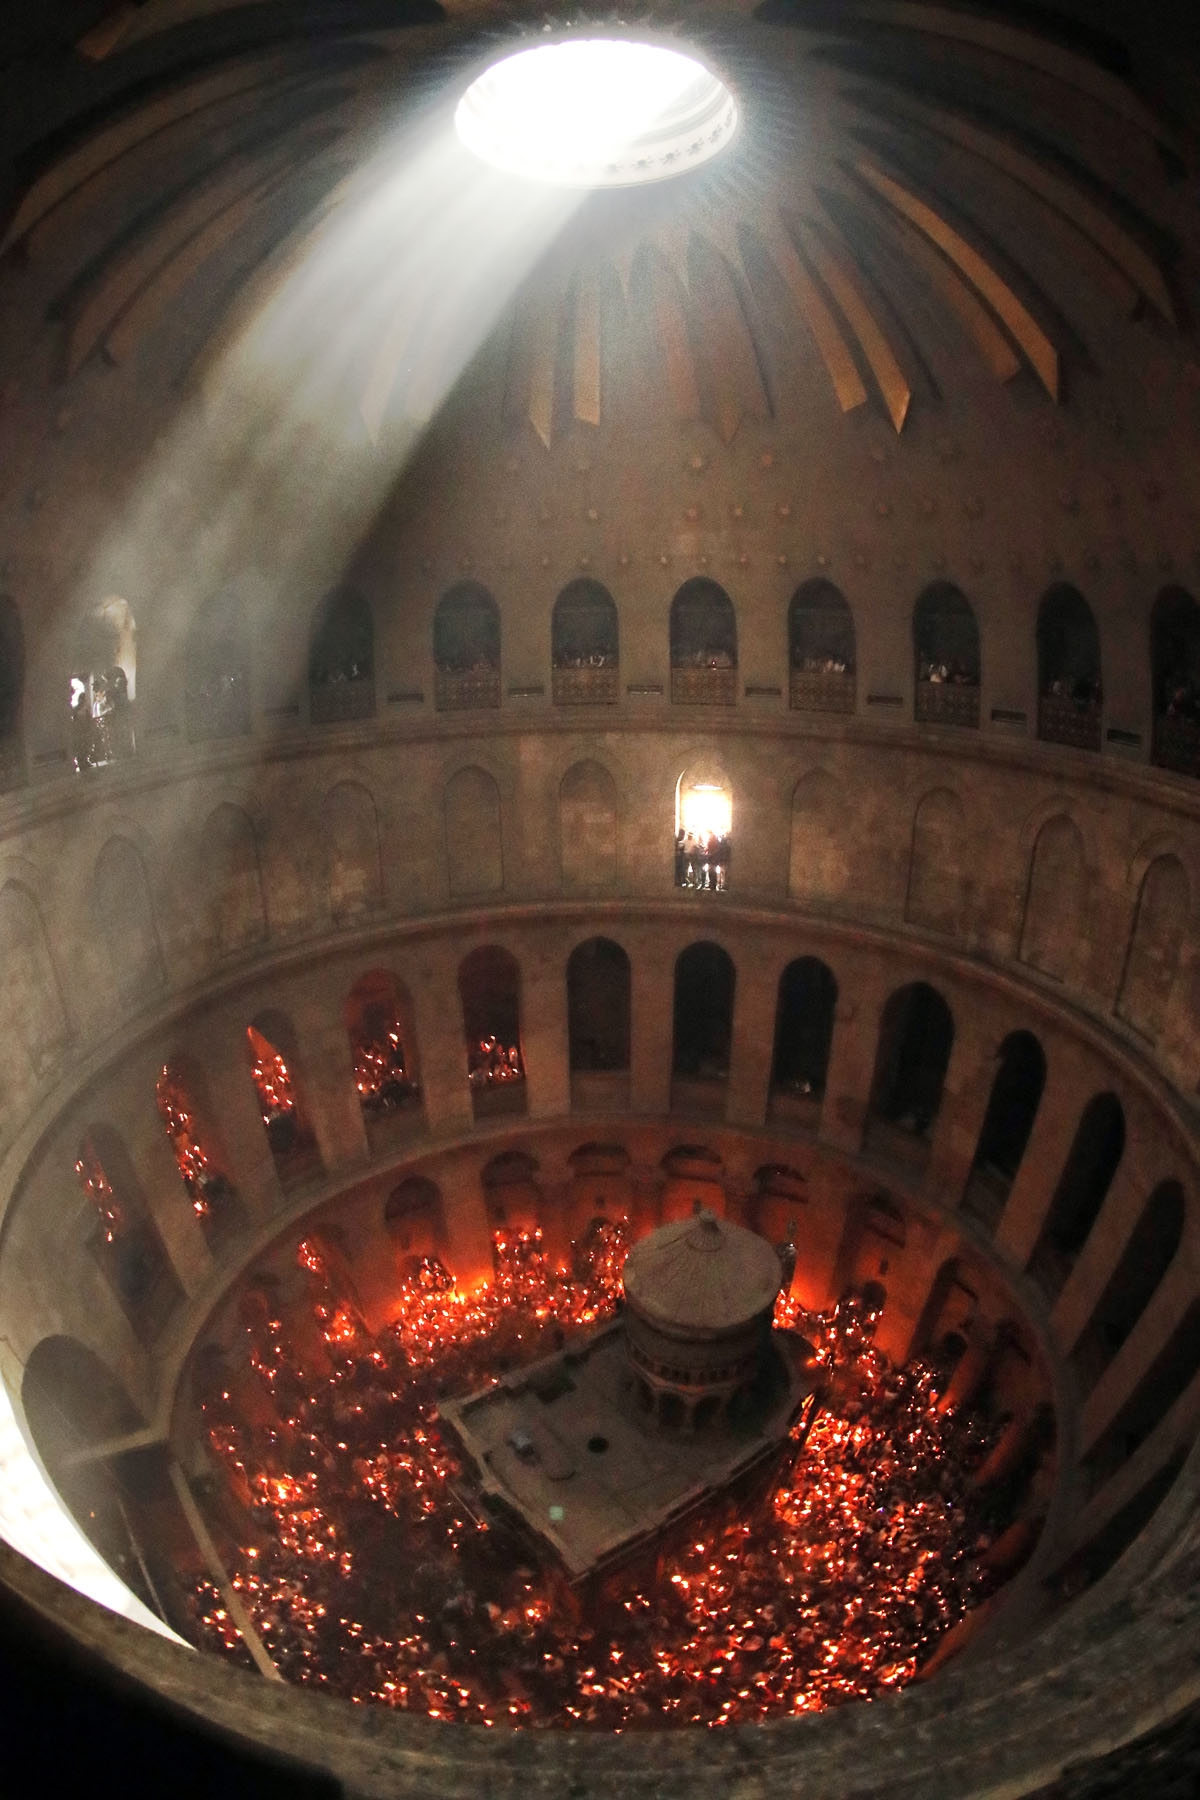 Christian Orthodox worshippers hold up candles lit from the Holy Fire as thousands gather in the Church of the Holy Sepulchre in Jerusalem's Old City, on April 30, 2016, during the Orthodox Easter ceremonies.